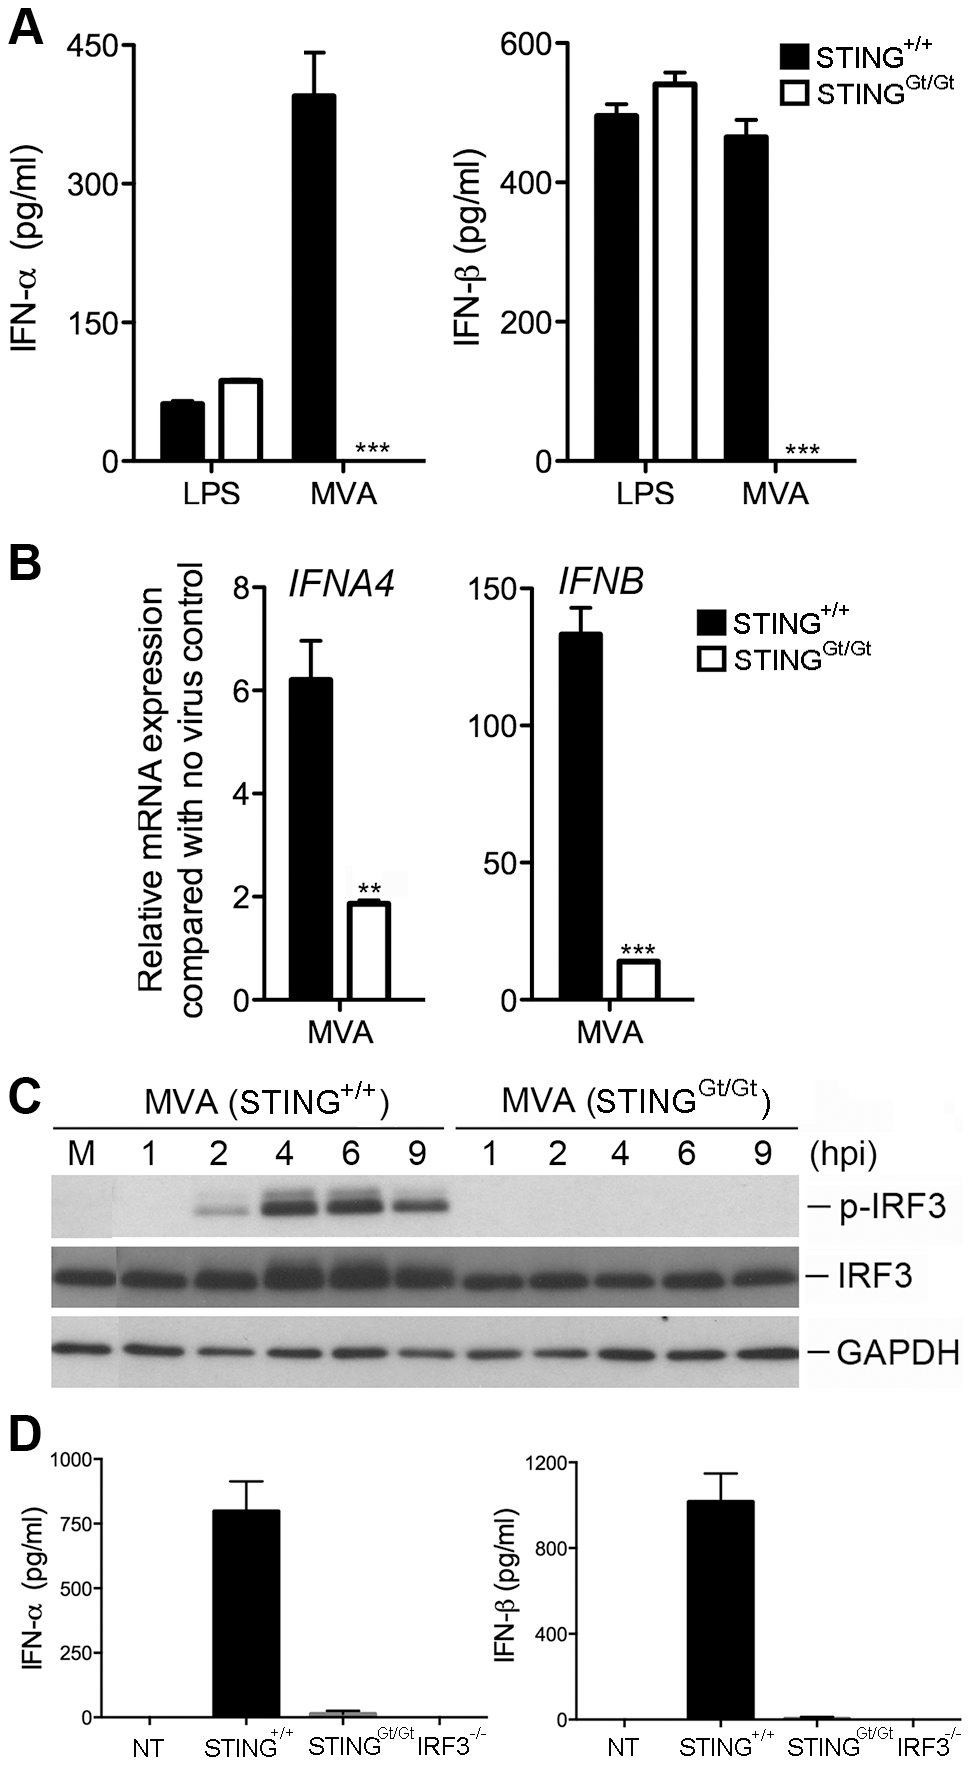 STING is required for the induction of type I IFN and IRF3 phosphorylation by MVA in BMDCs.